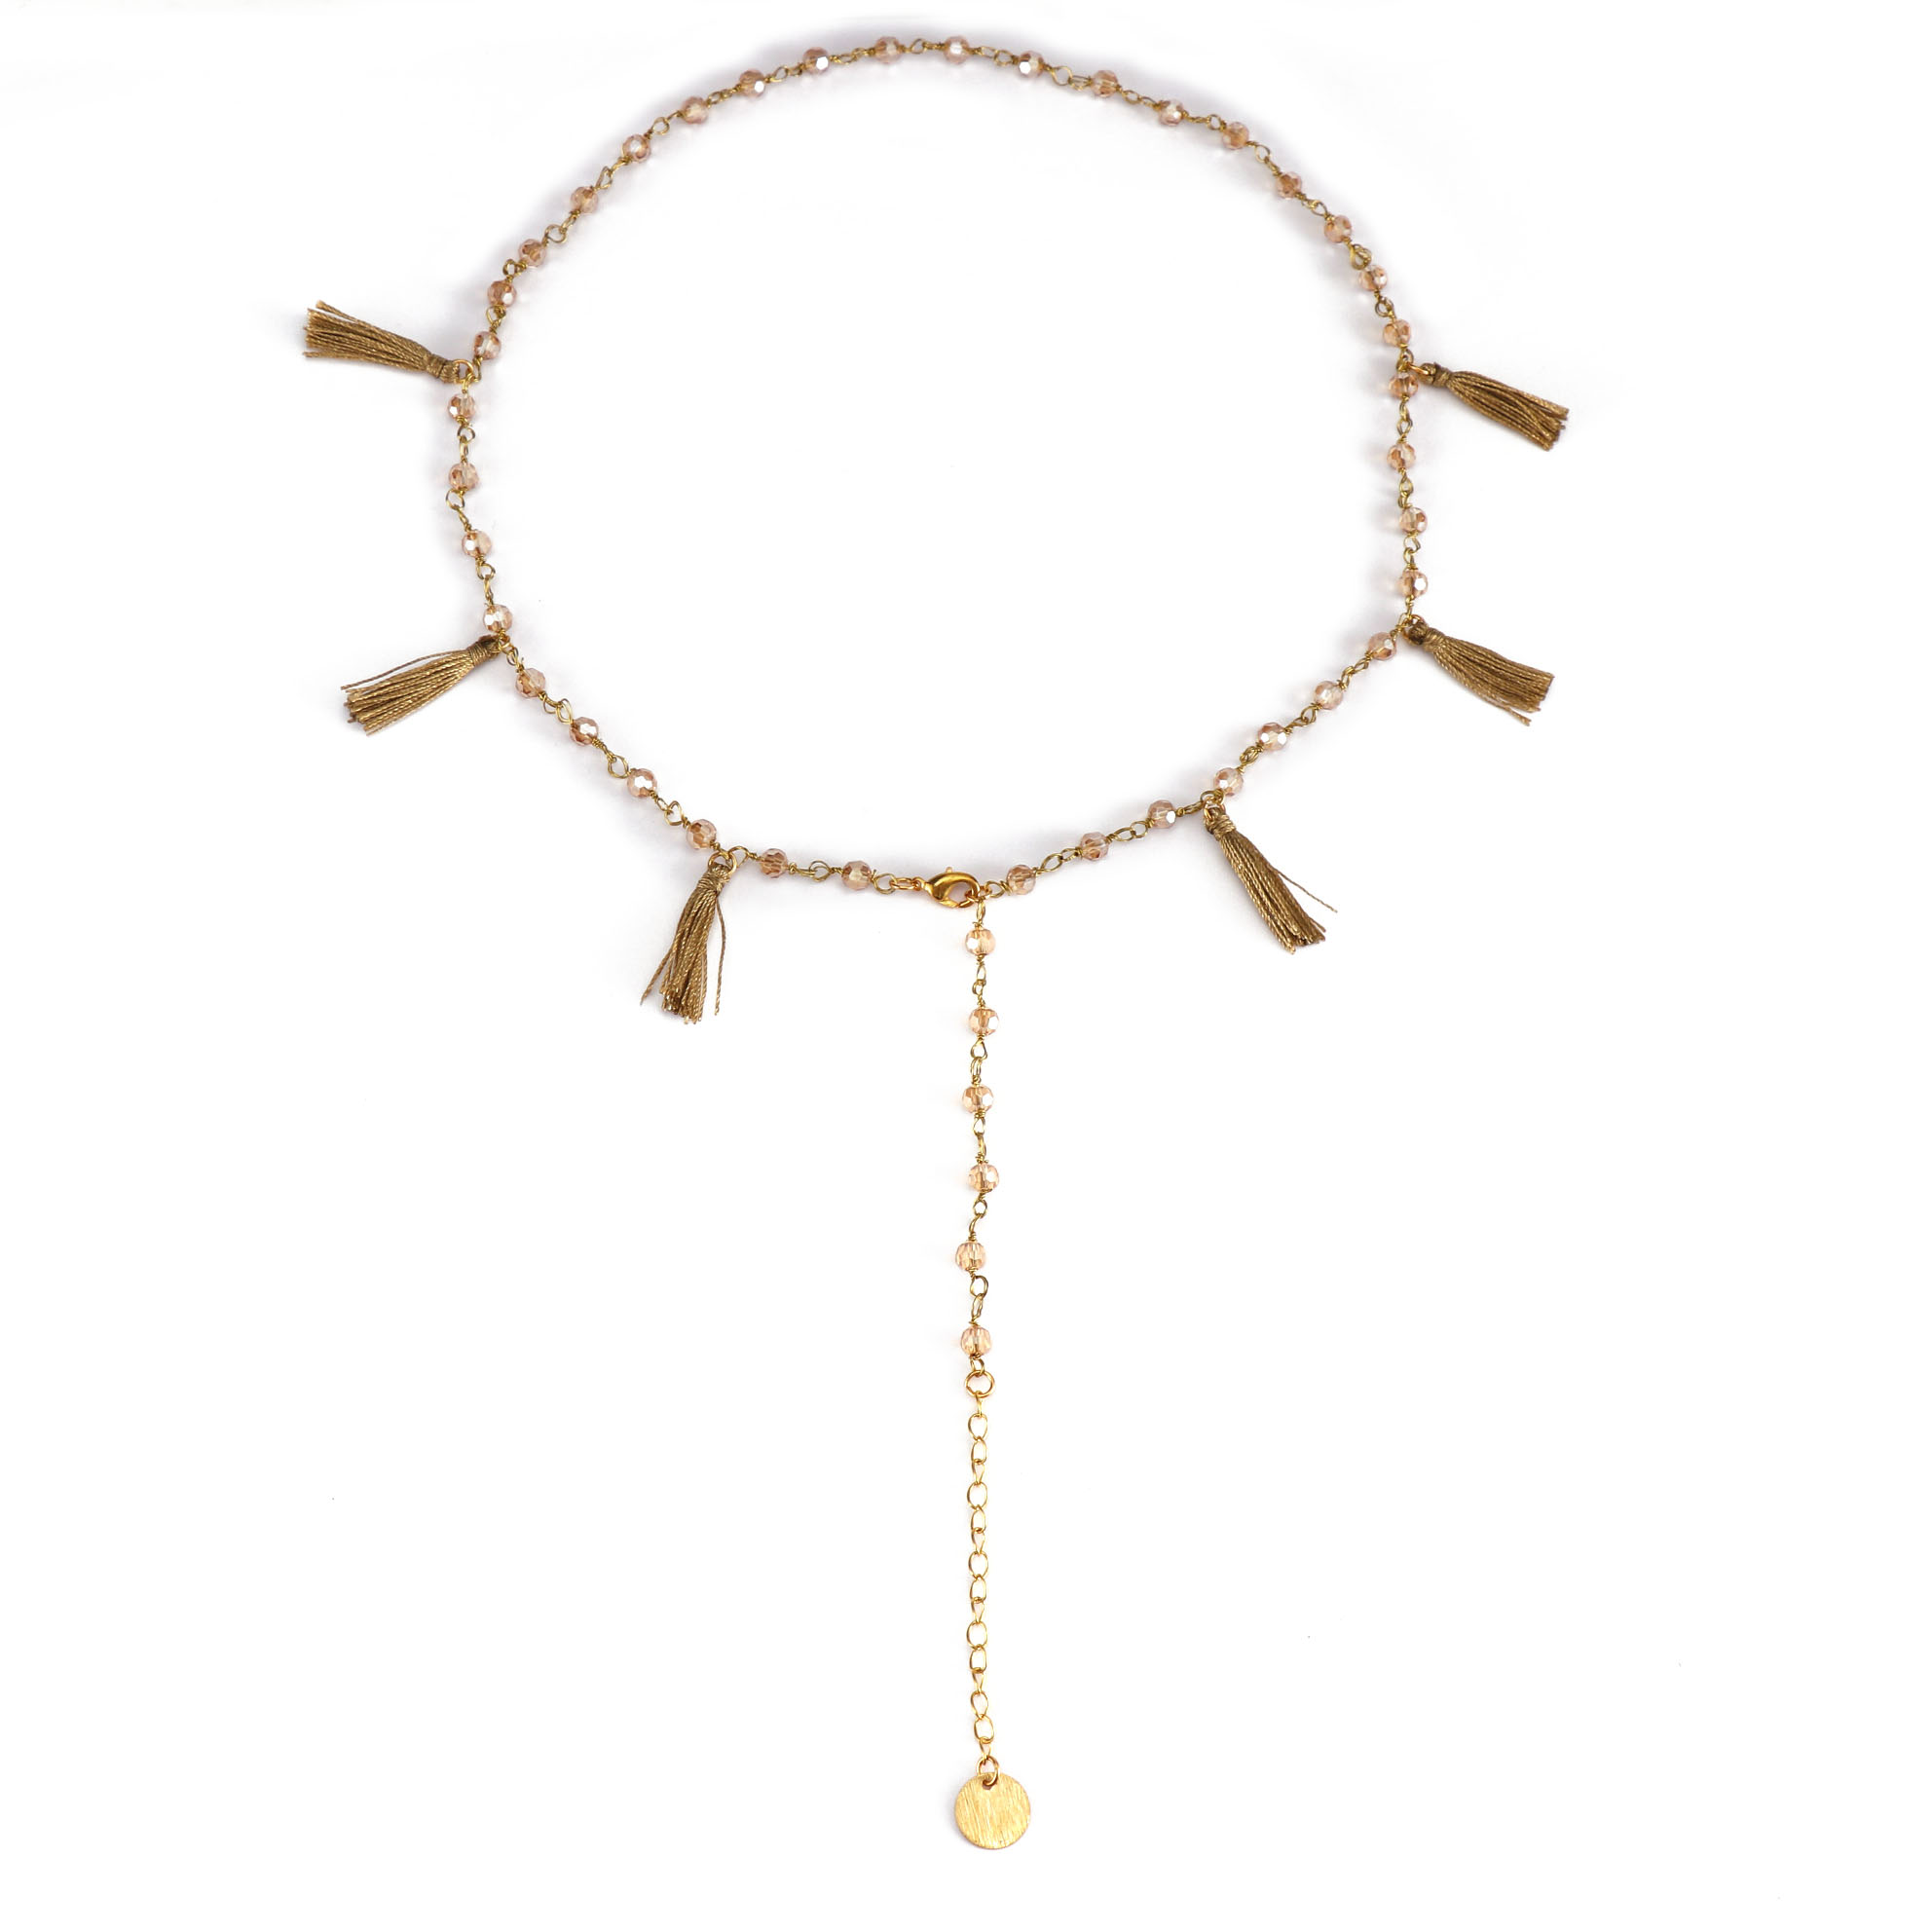 Stylish Wholesale Gold Plated Crystal Beads Necklace With Tassel Women Jewlery